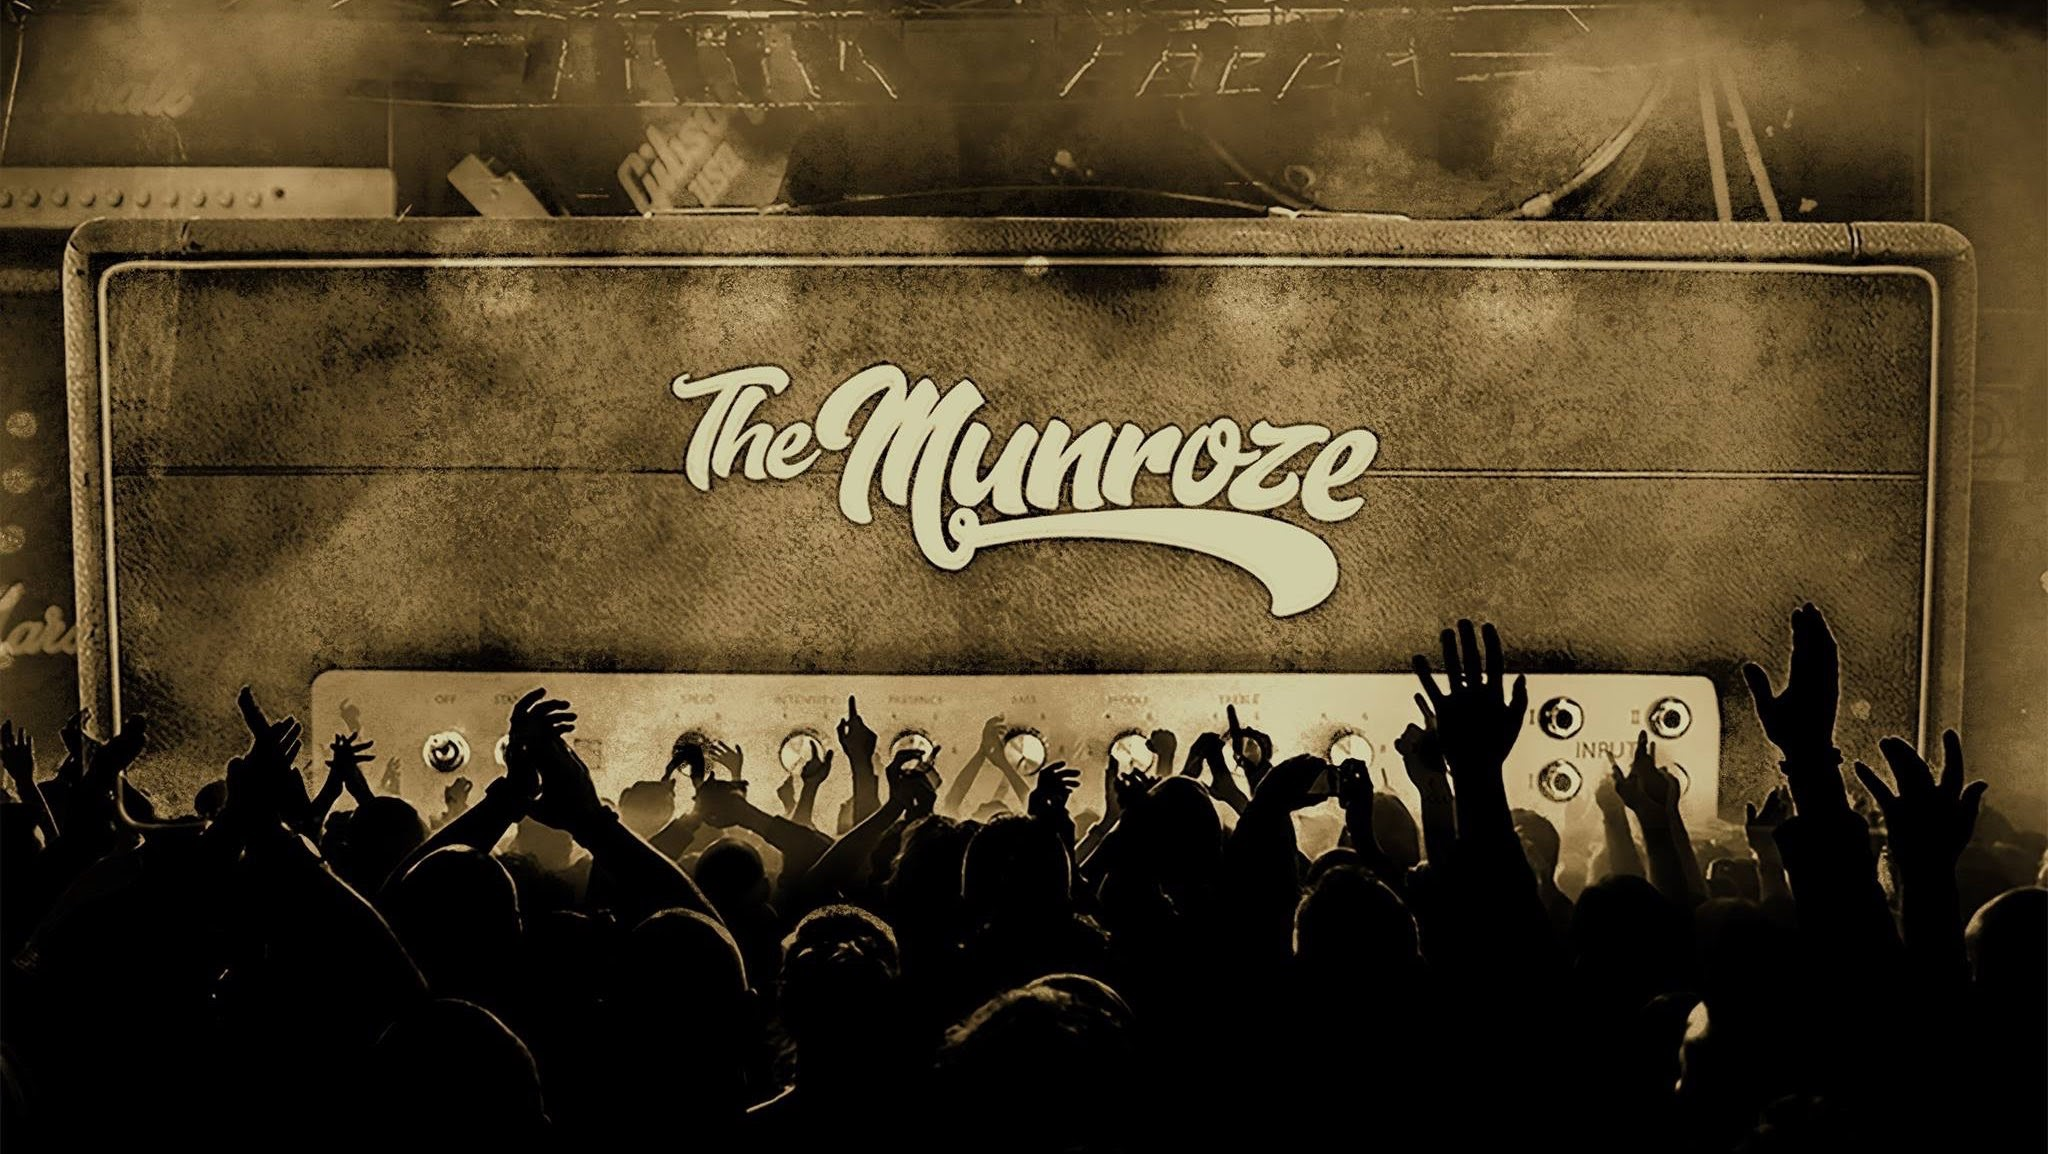 The Munroze